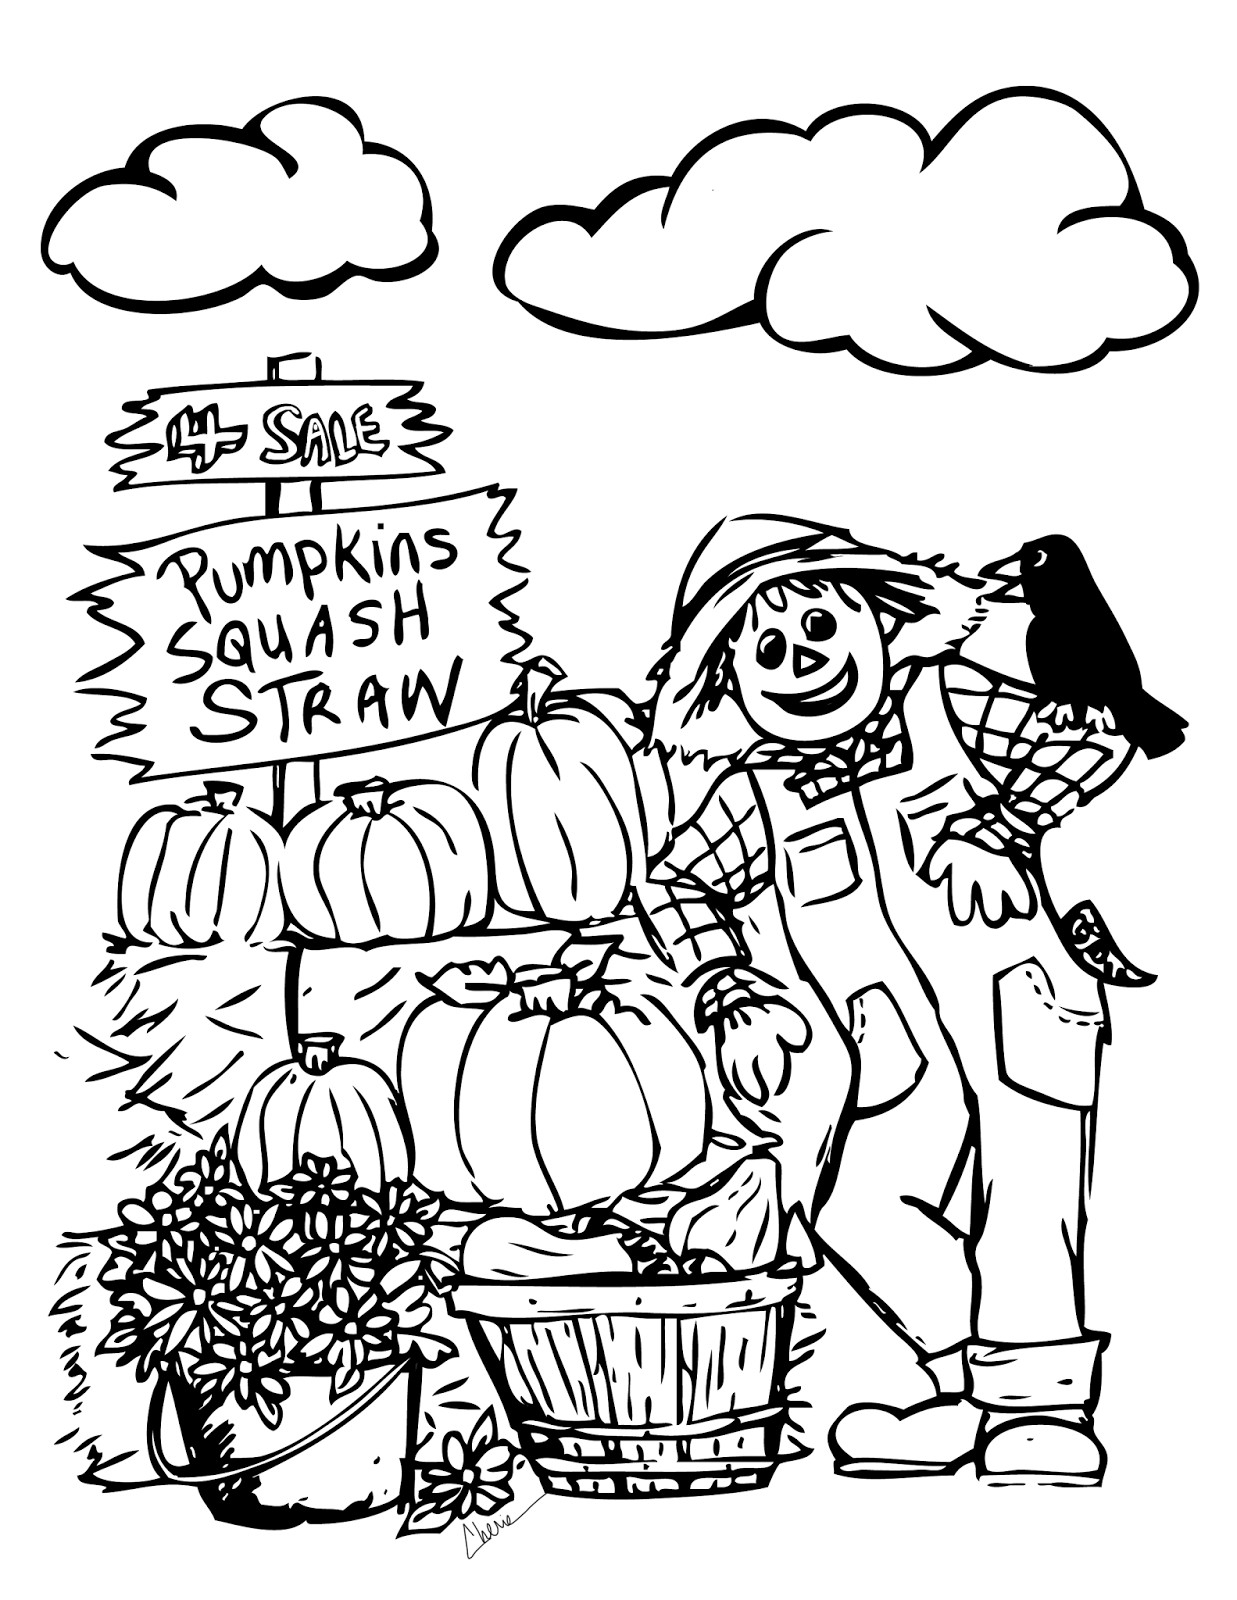 free coloring pages to color online Download-Flag Template Printable Awesome Engaging Fall Coloring Pages Printable 26 Kids New 0d Page for 14-k